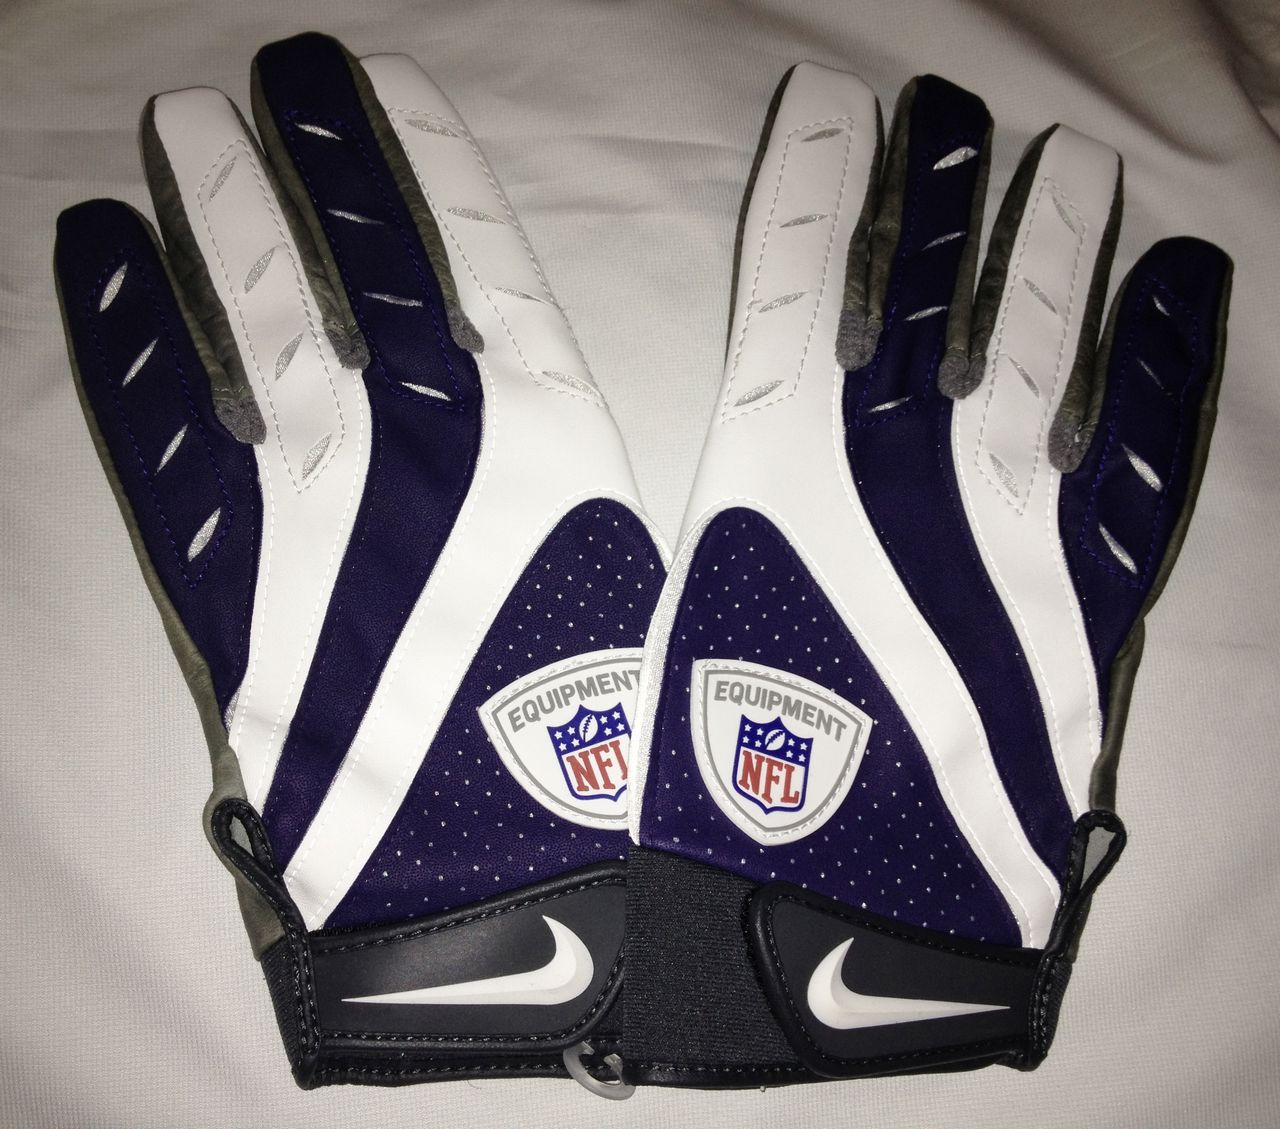 Nike Football Gloves: NEW Mens 3XL NIKE Pro Elite Remix NFL Equipment Skill